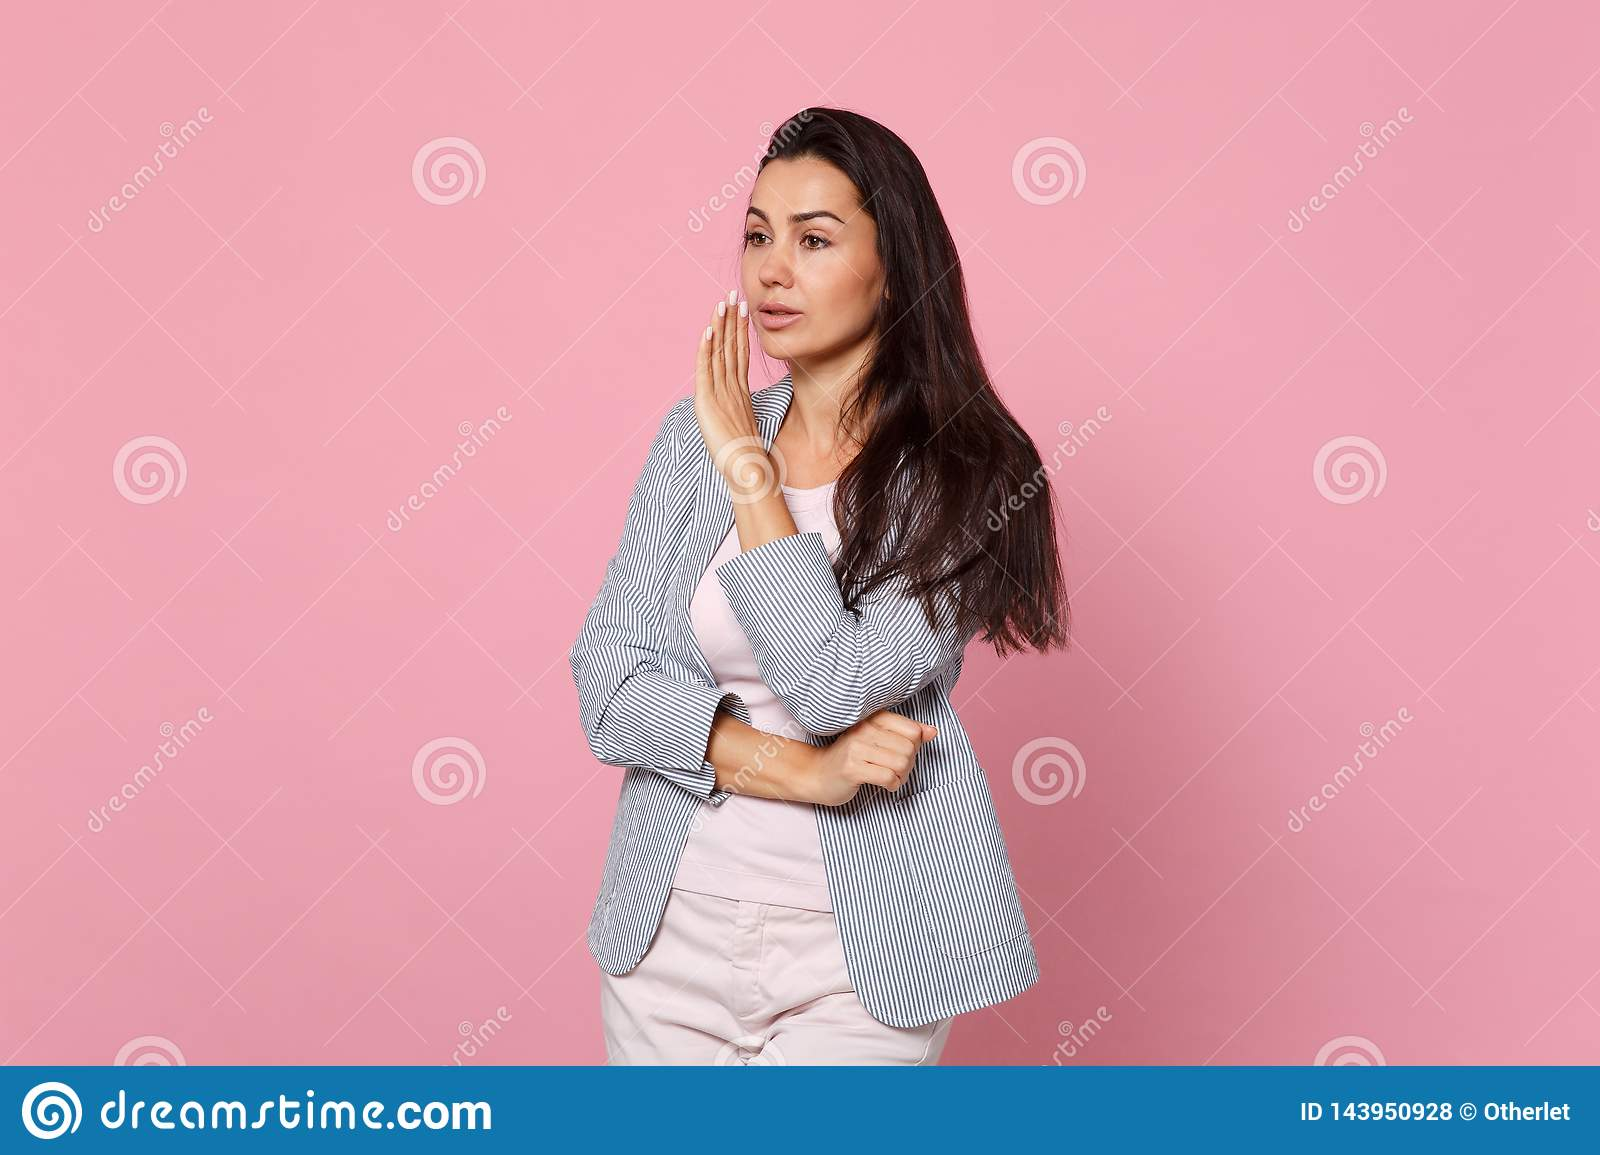 Beautiful young woman in striped jacket looking aside whispers gossip tells secret with hand gesture isolated on pink